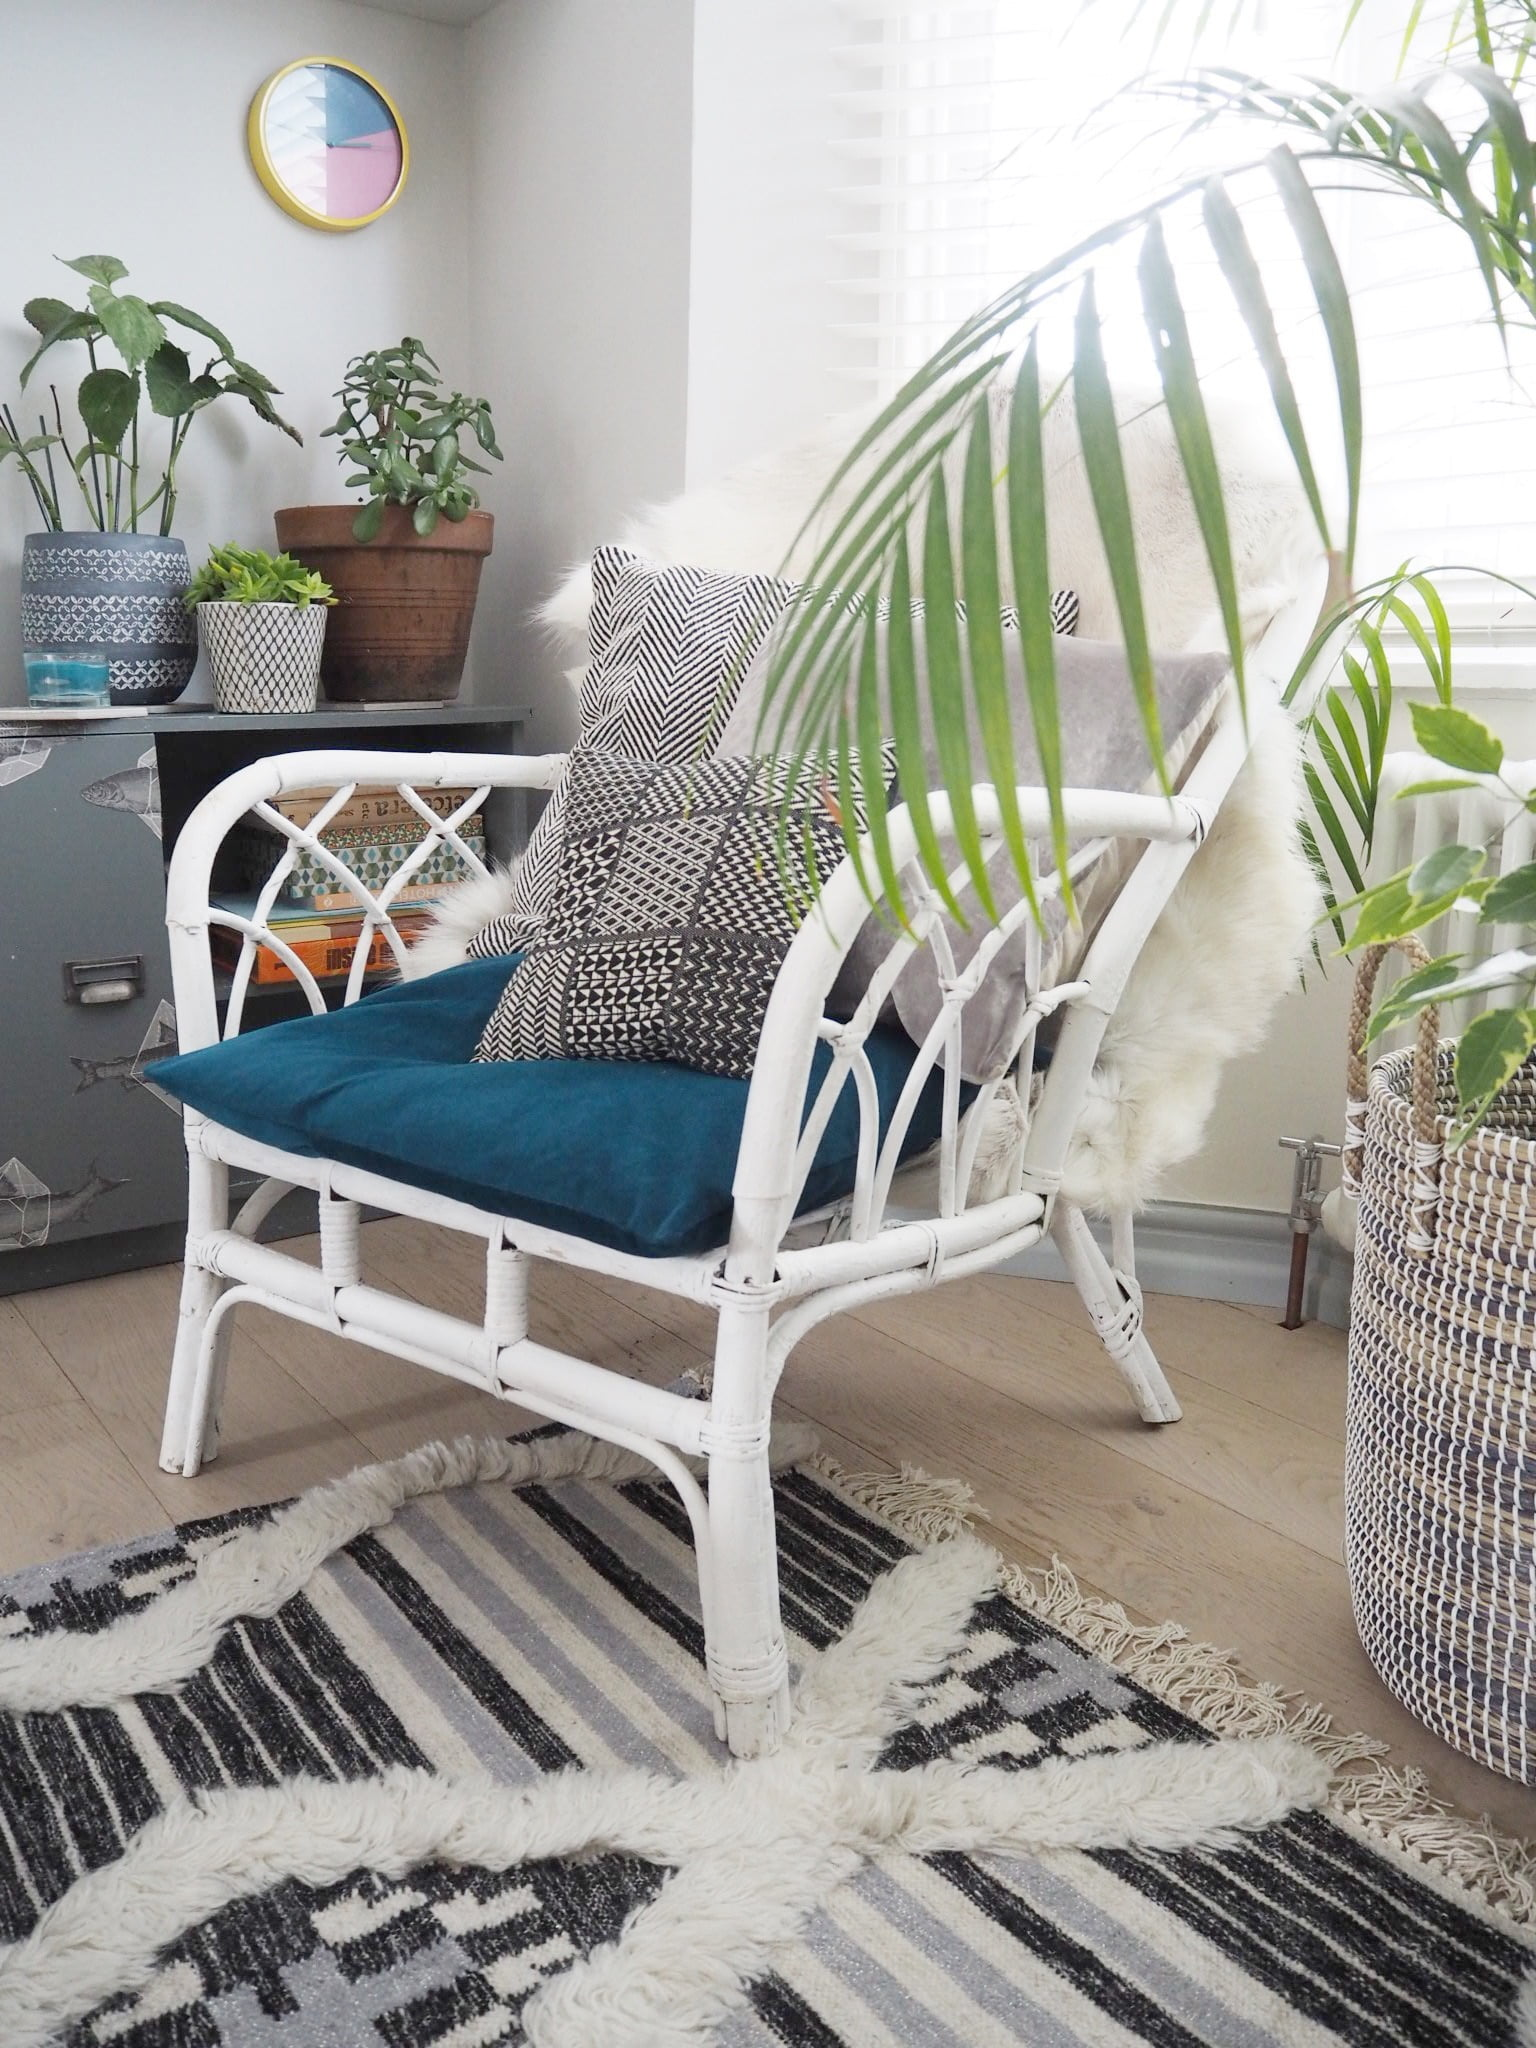 A budget Living Room makeover with lots of before and after shots - with a boho vibes by Maxine Brady from WeLoveHomeBlog